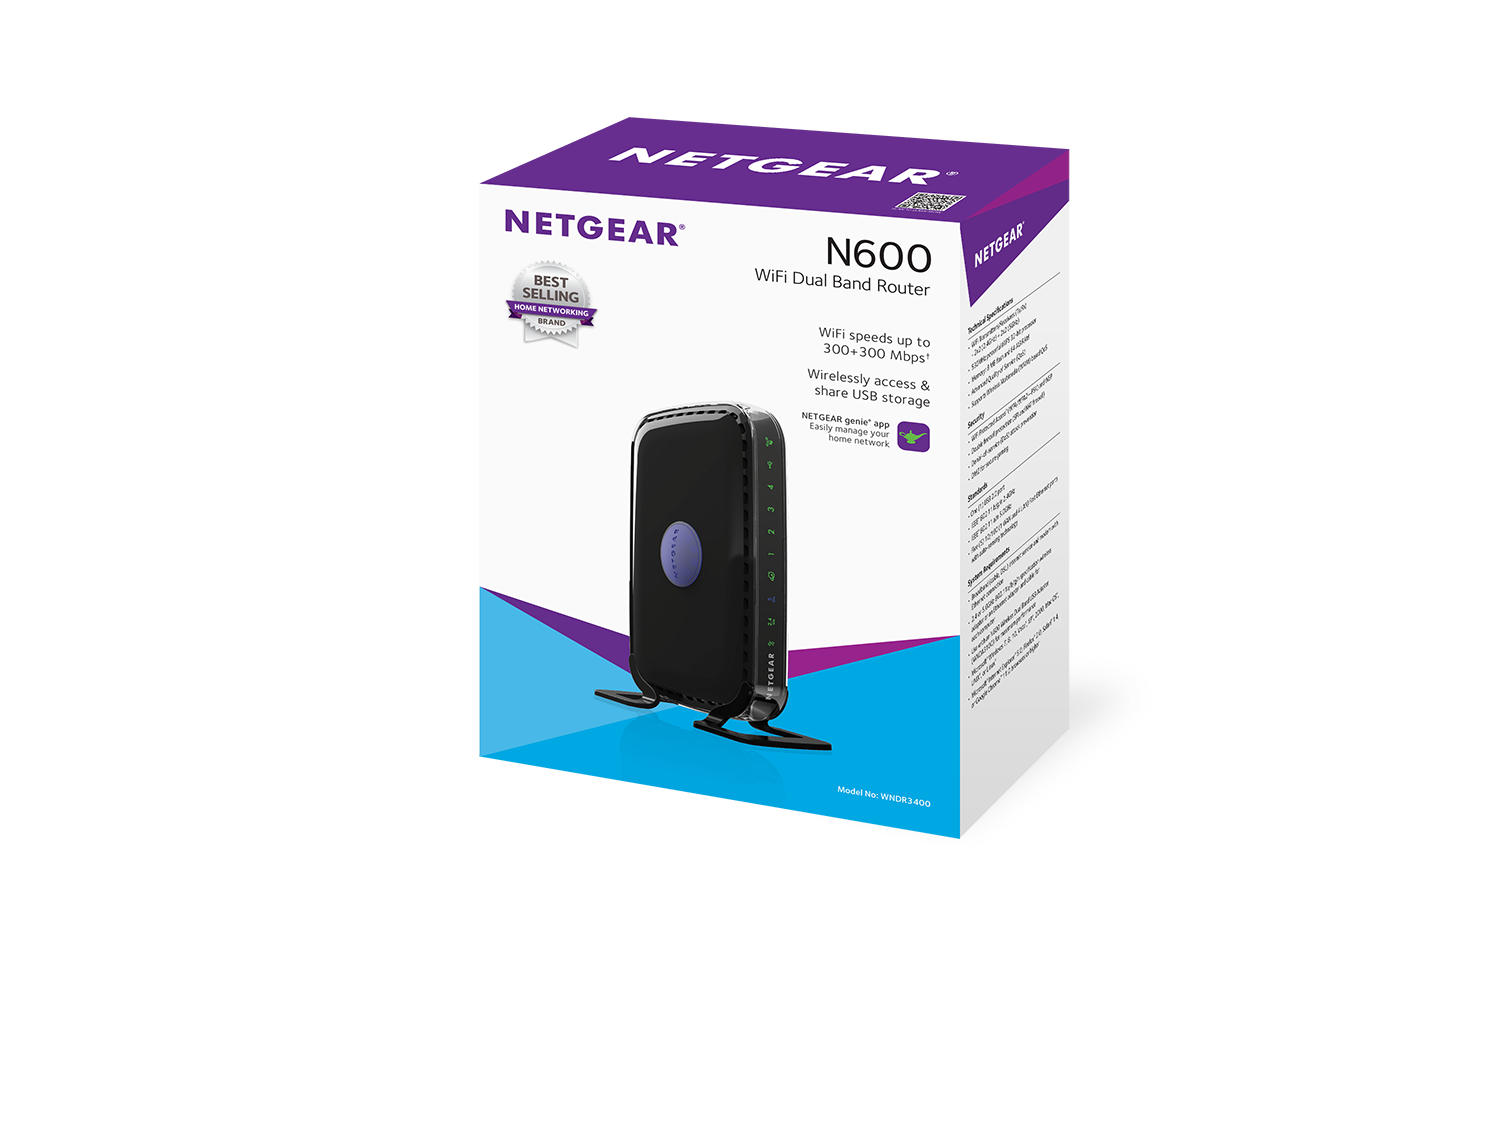 Wndr3400 Wifi Routers Networking Home Netgear